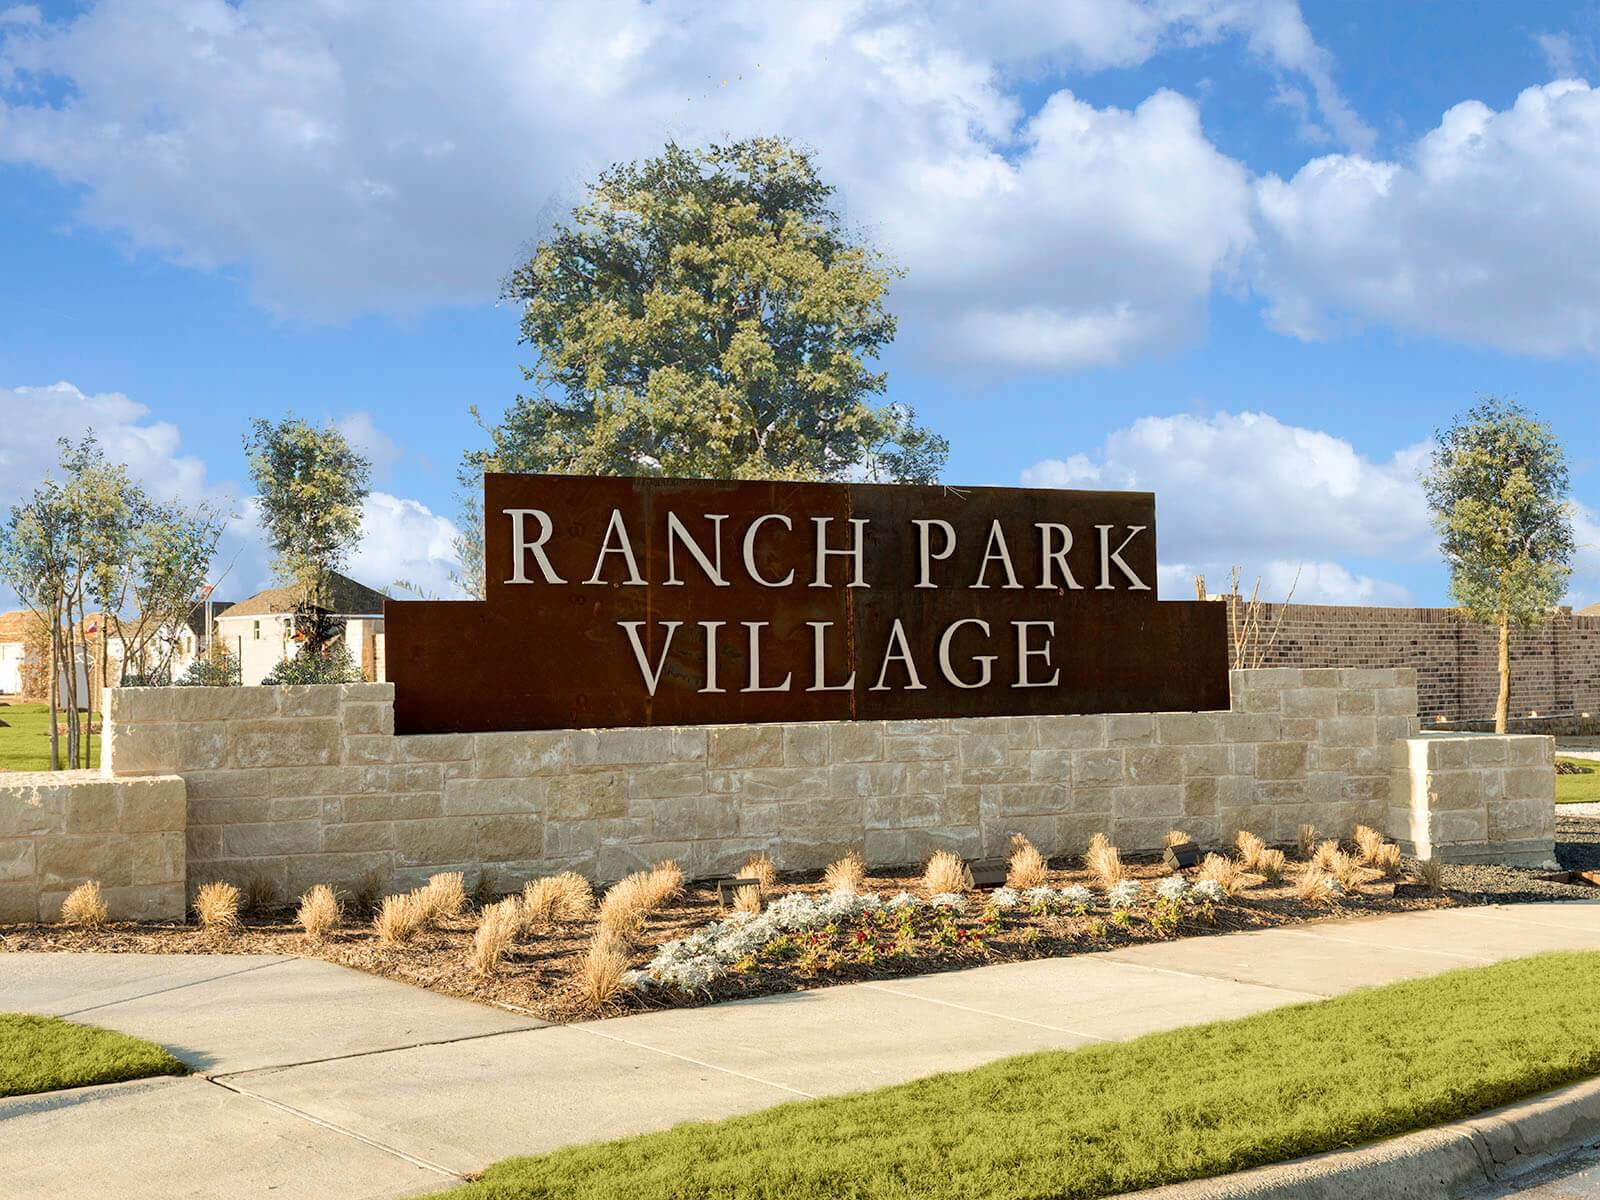 Welcome to Ranch Park Village